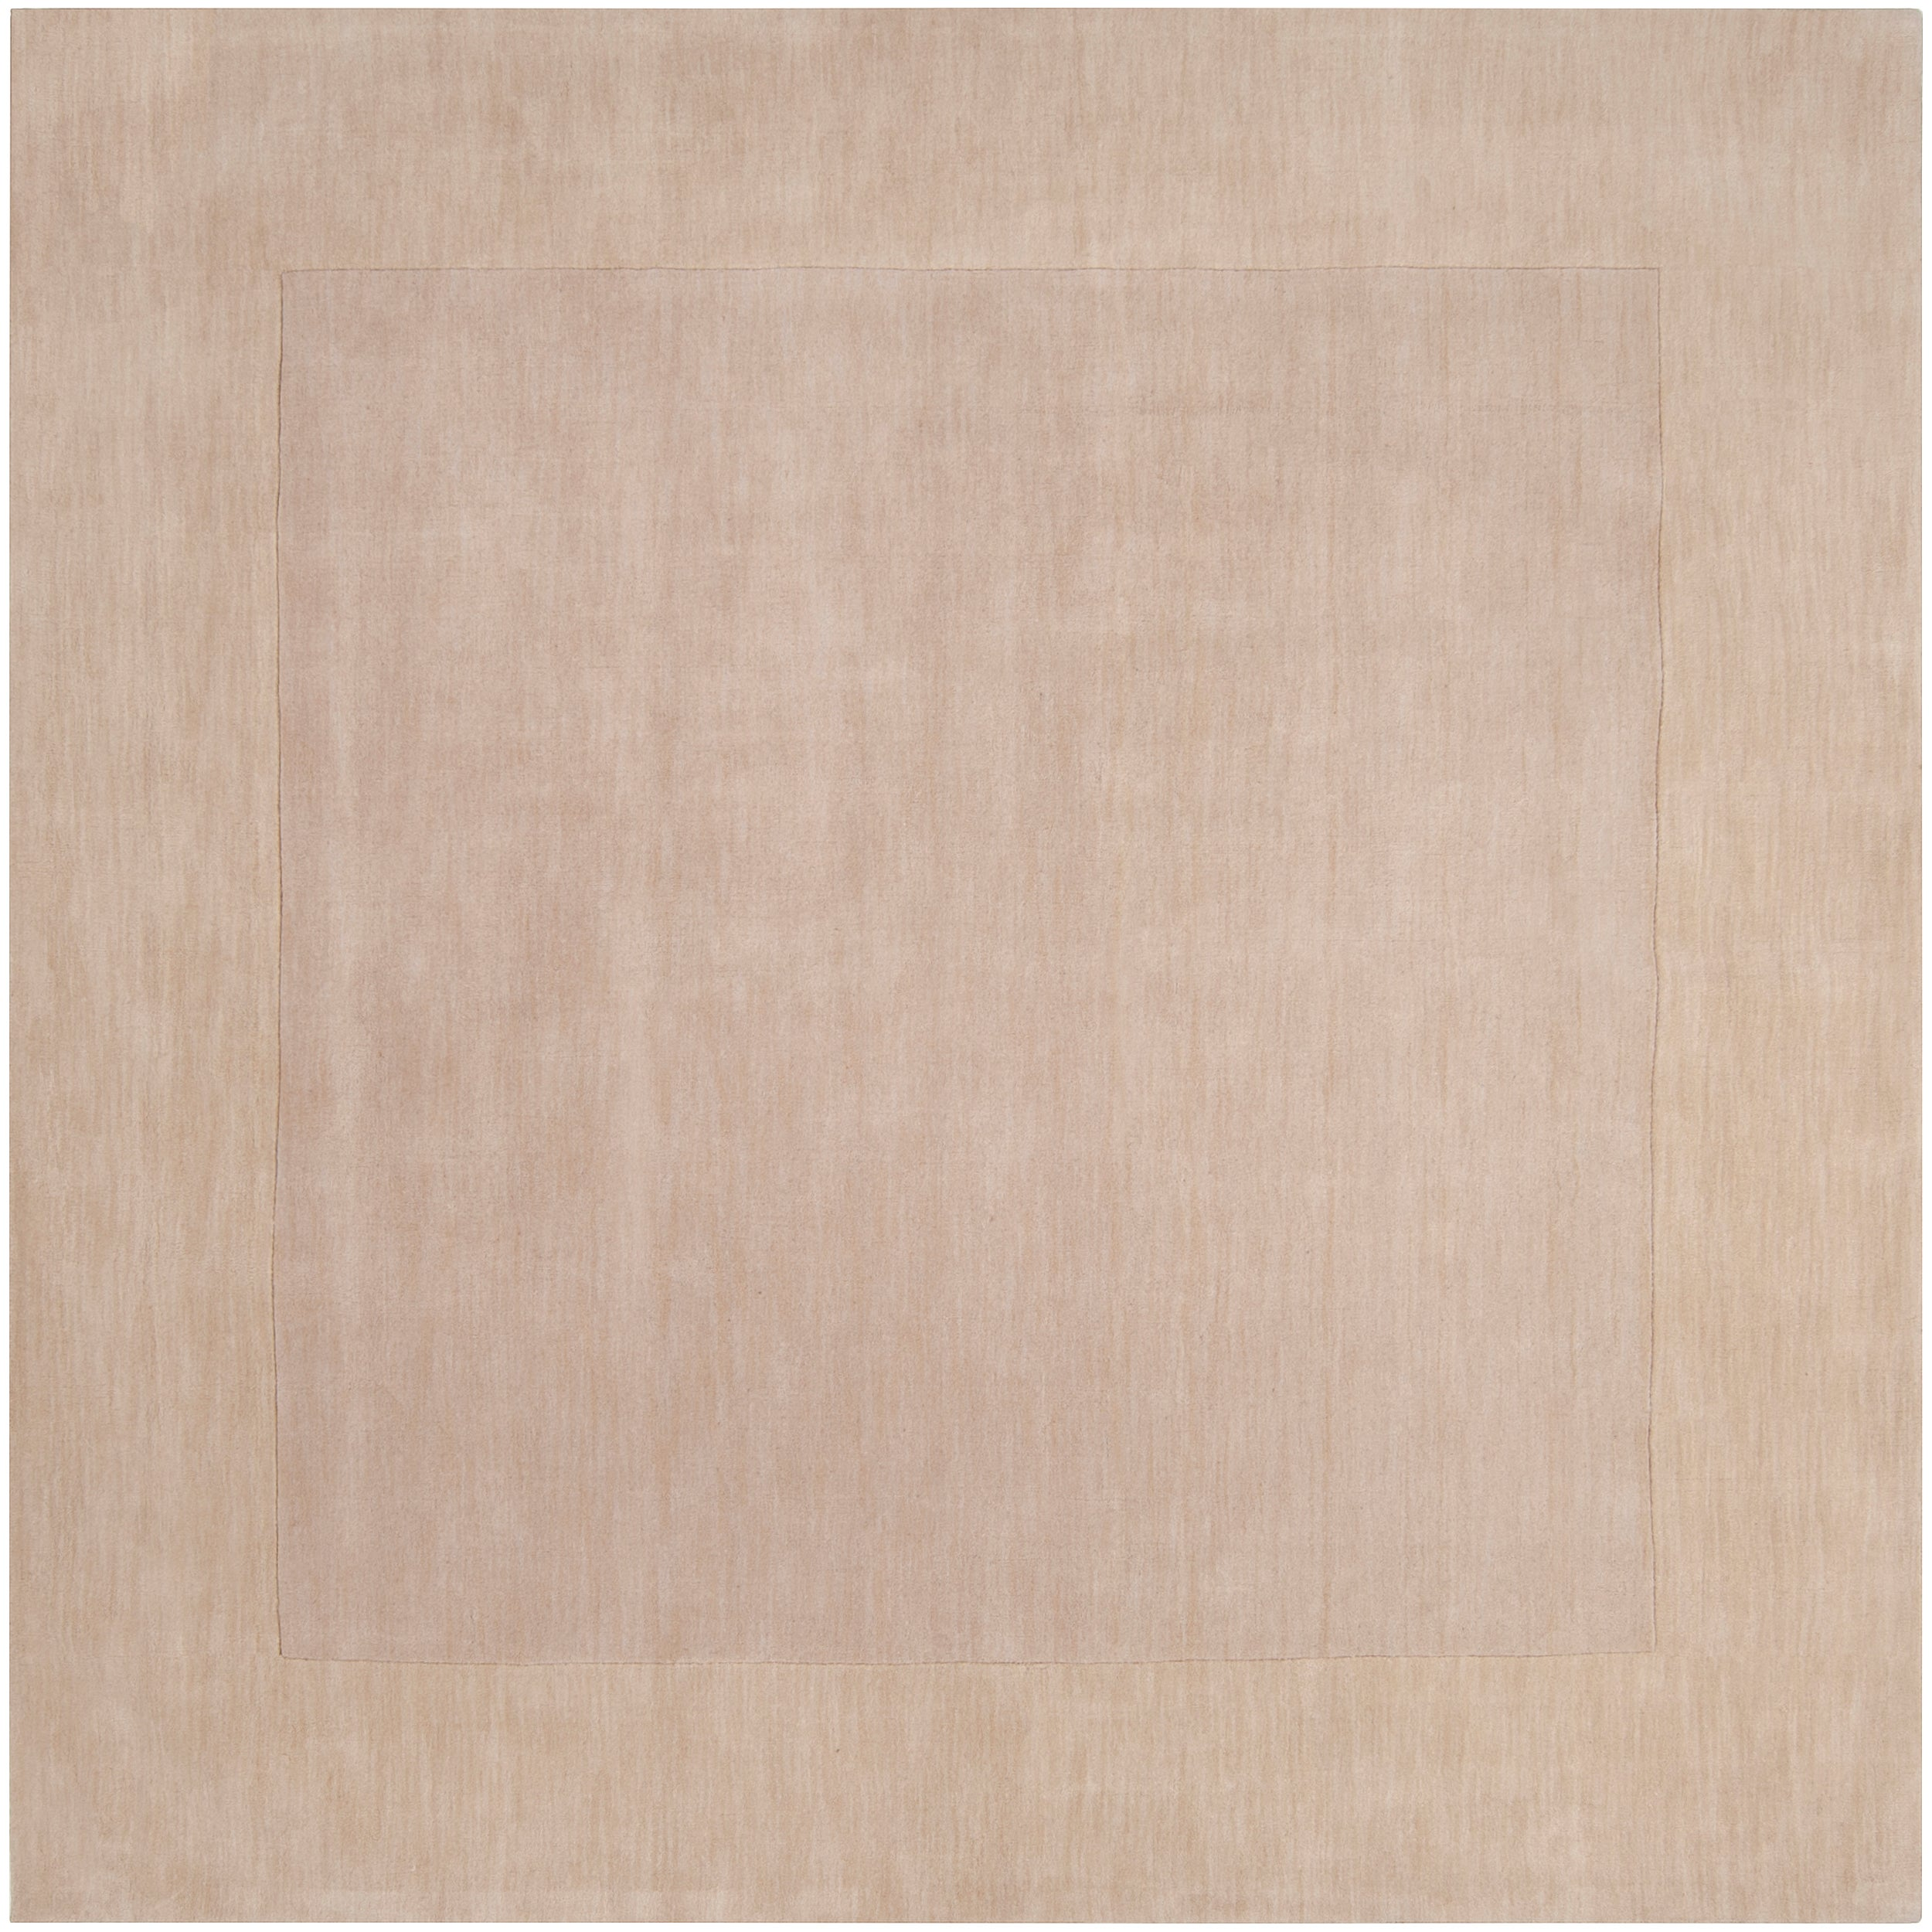 Hand-crafted White Tone-On-Tone Bordered Mezen Wool Rug (9'9 Square)